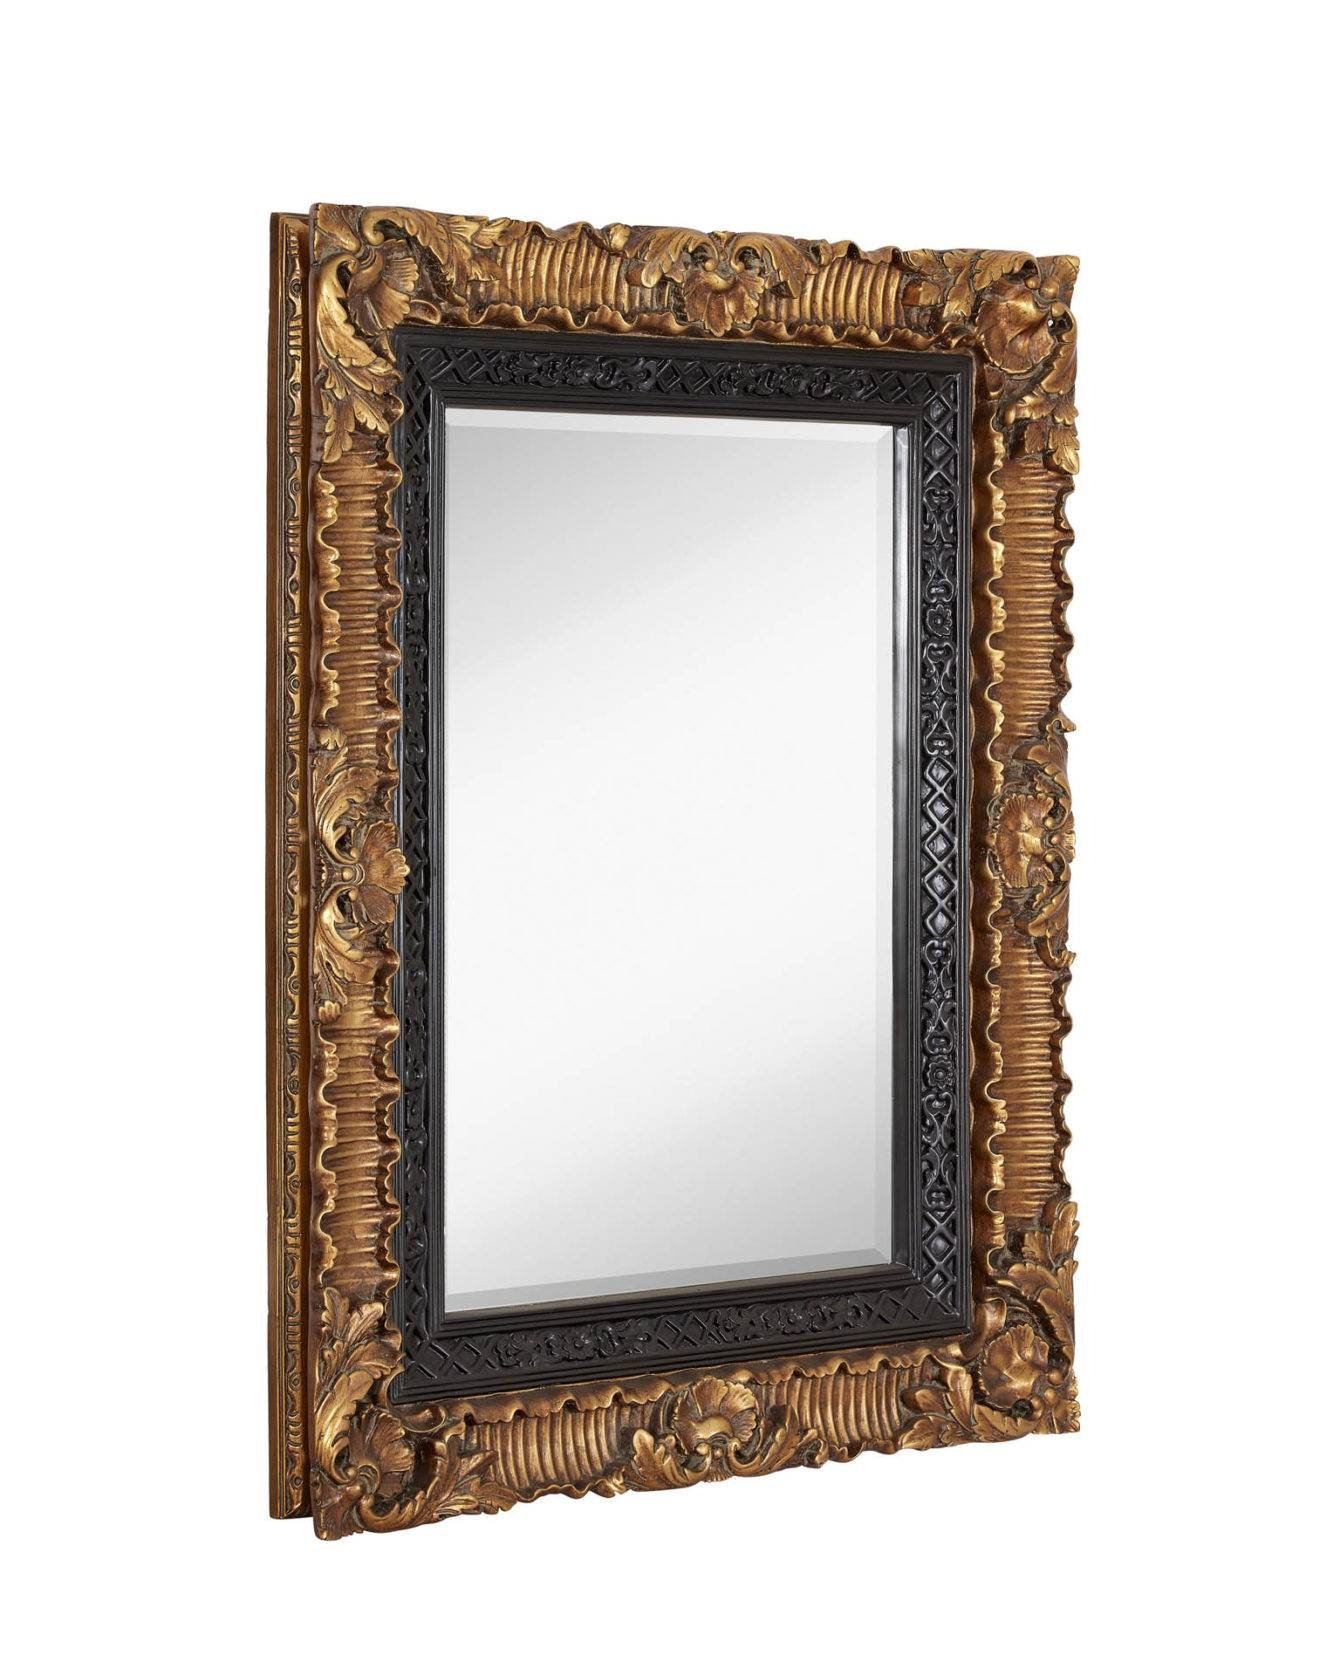 Majestic Mirror & Frame regarding Large Art Deco Wall Mirrors (Image 24 of 25)